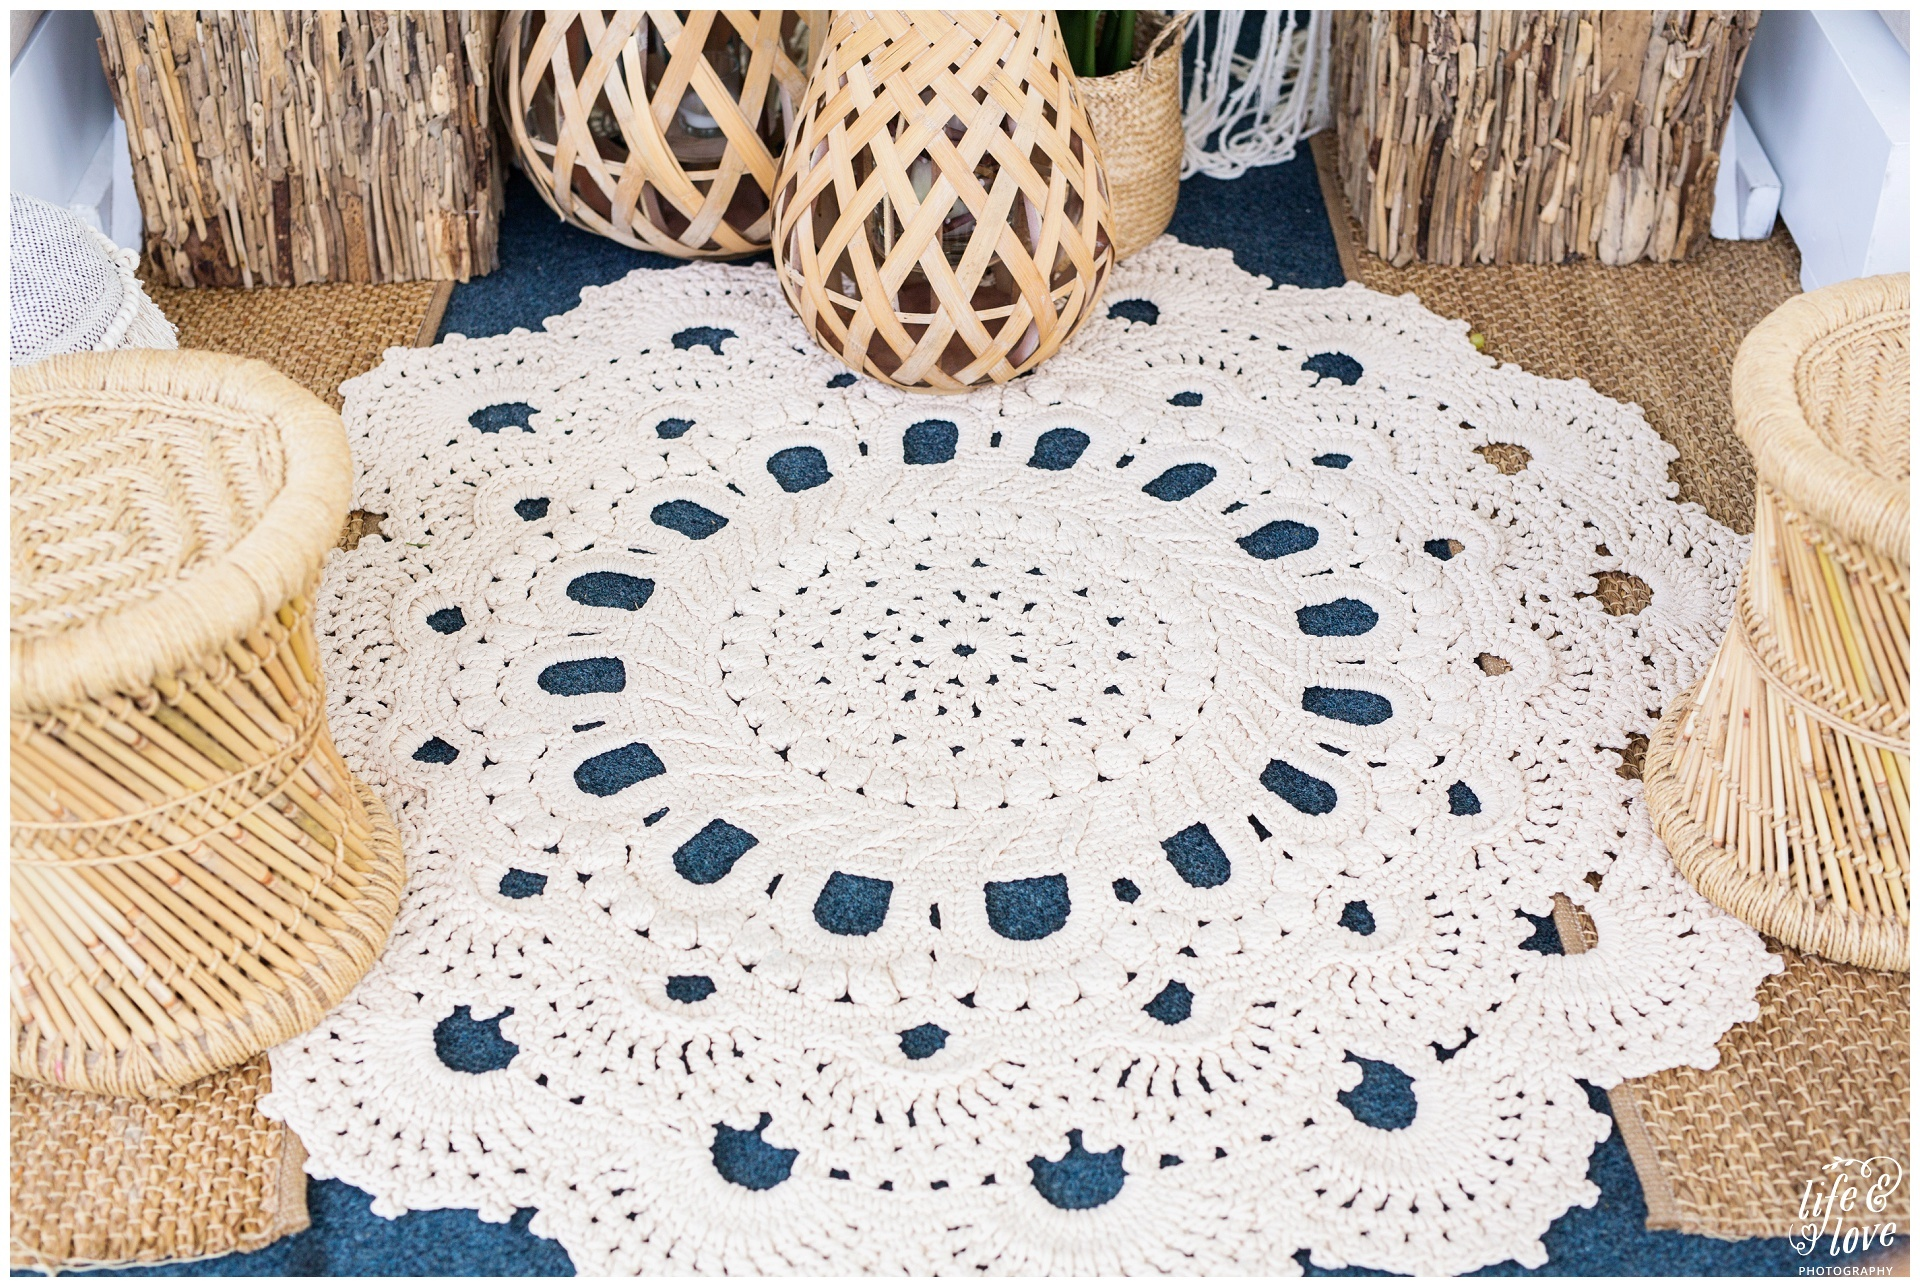 Crochet rug - Splash Events, Noosa & Sunshine Coast